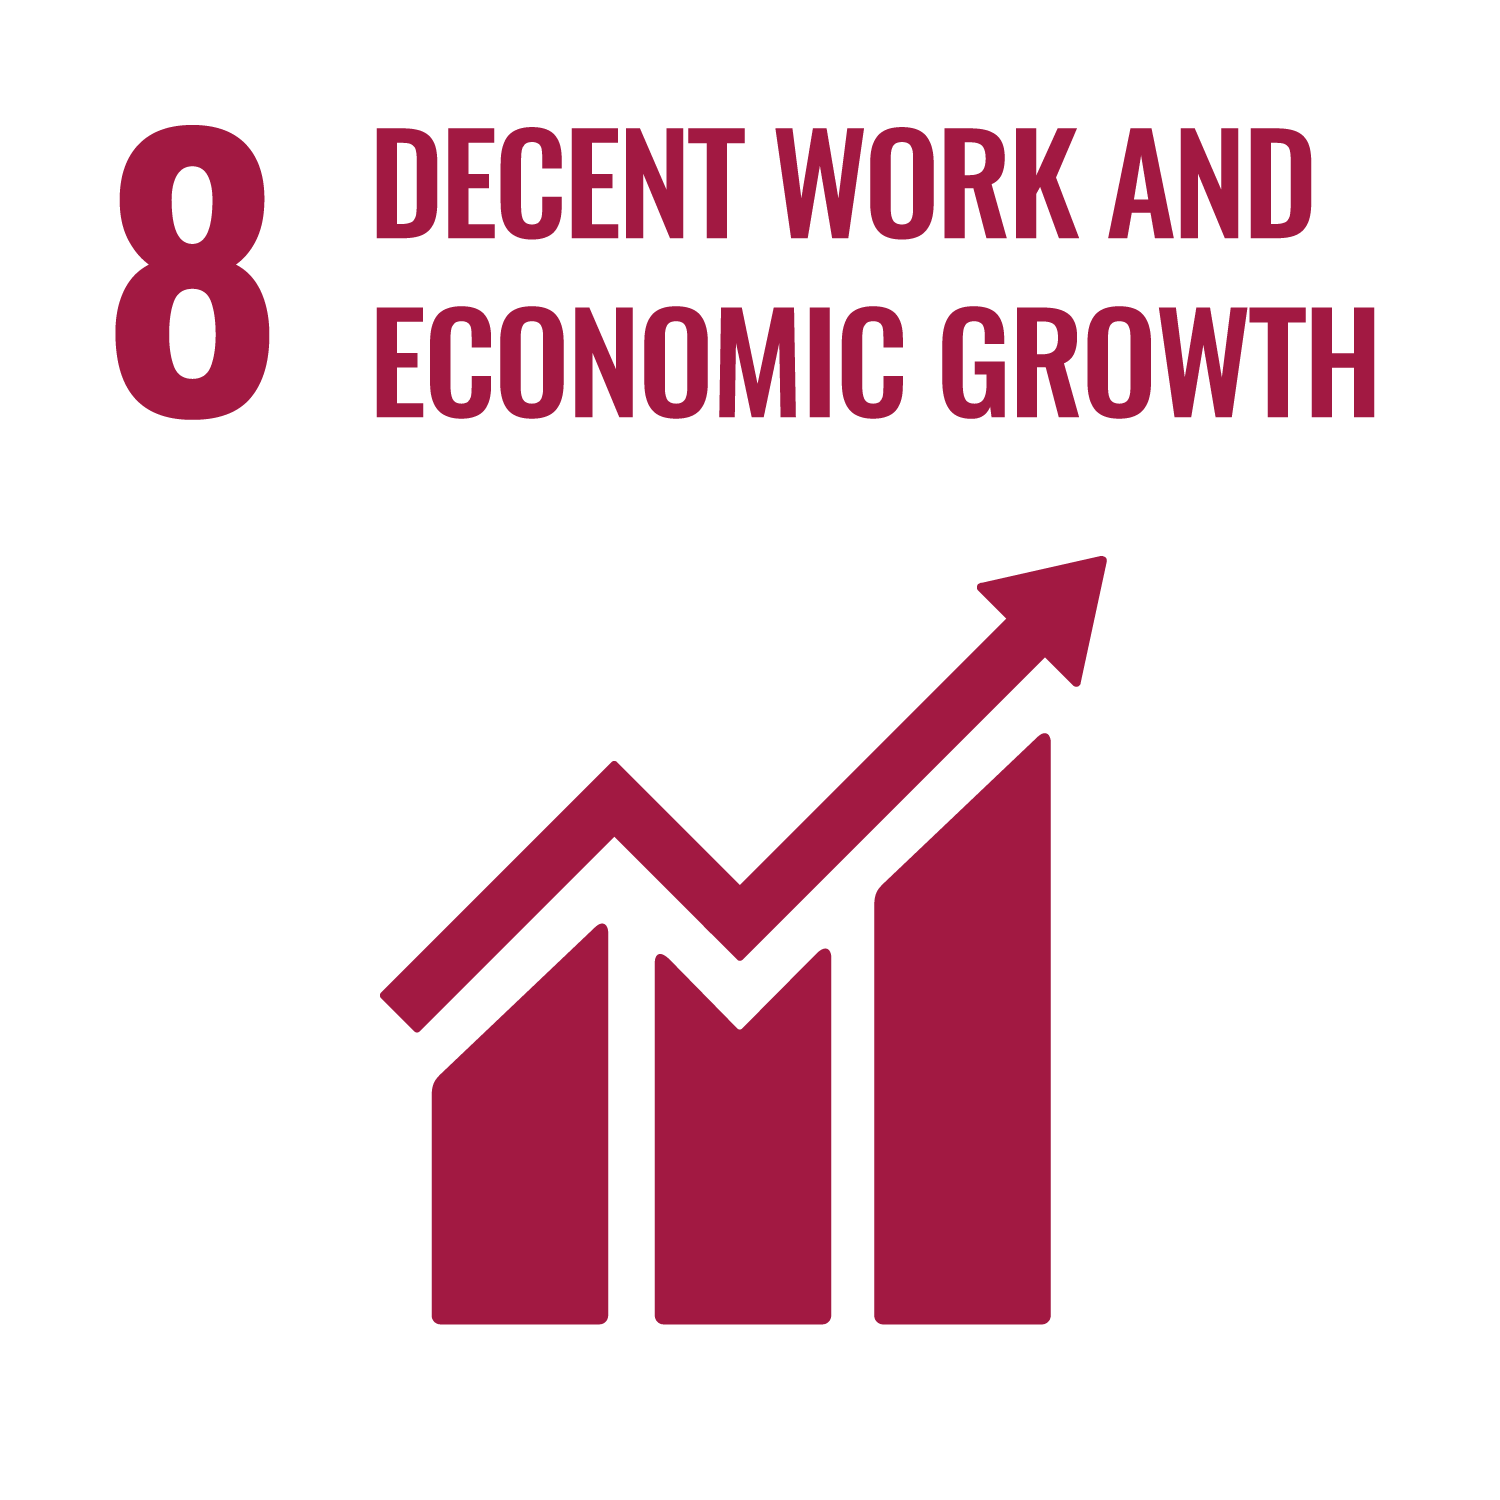 United Nations Sustainable Development Goals - Decent work and economic growth